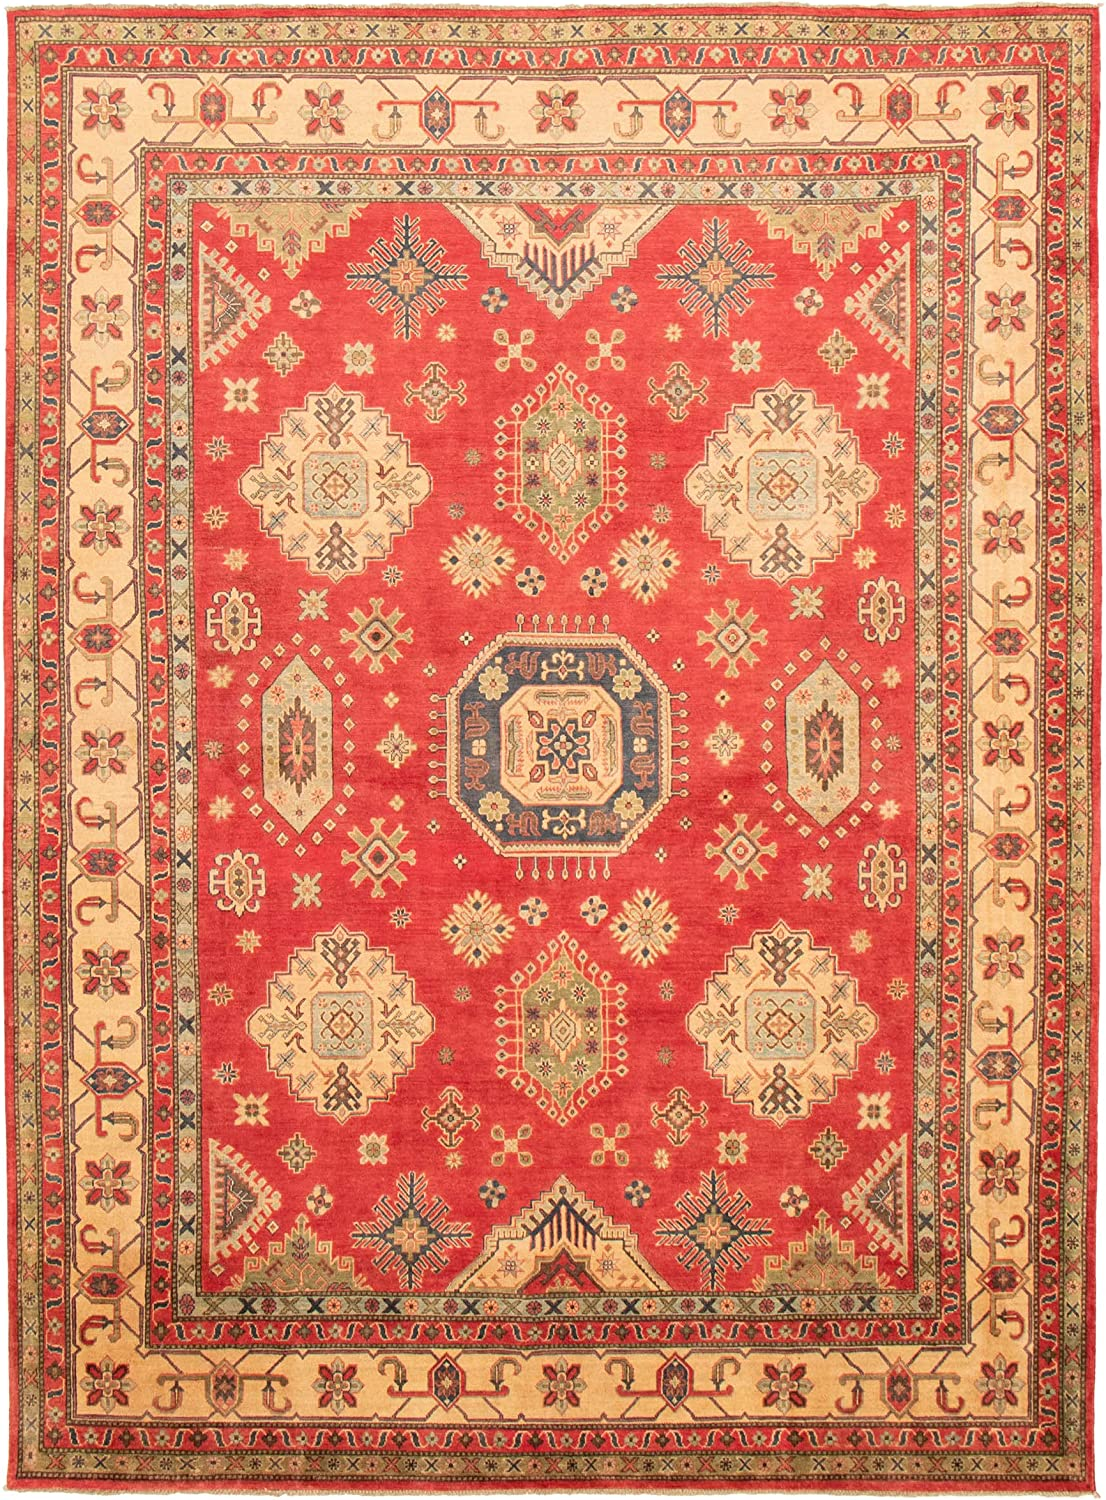 eCarpet Gallery Large Area Special price for a limited time low-pricing Rug Living Hand-K Bedroom Room